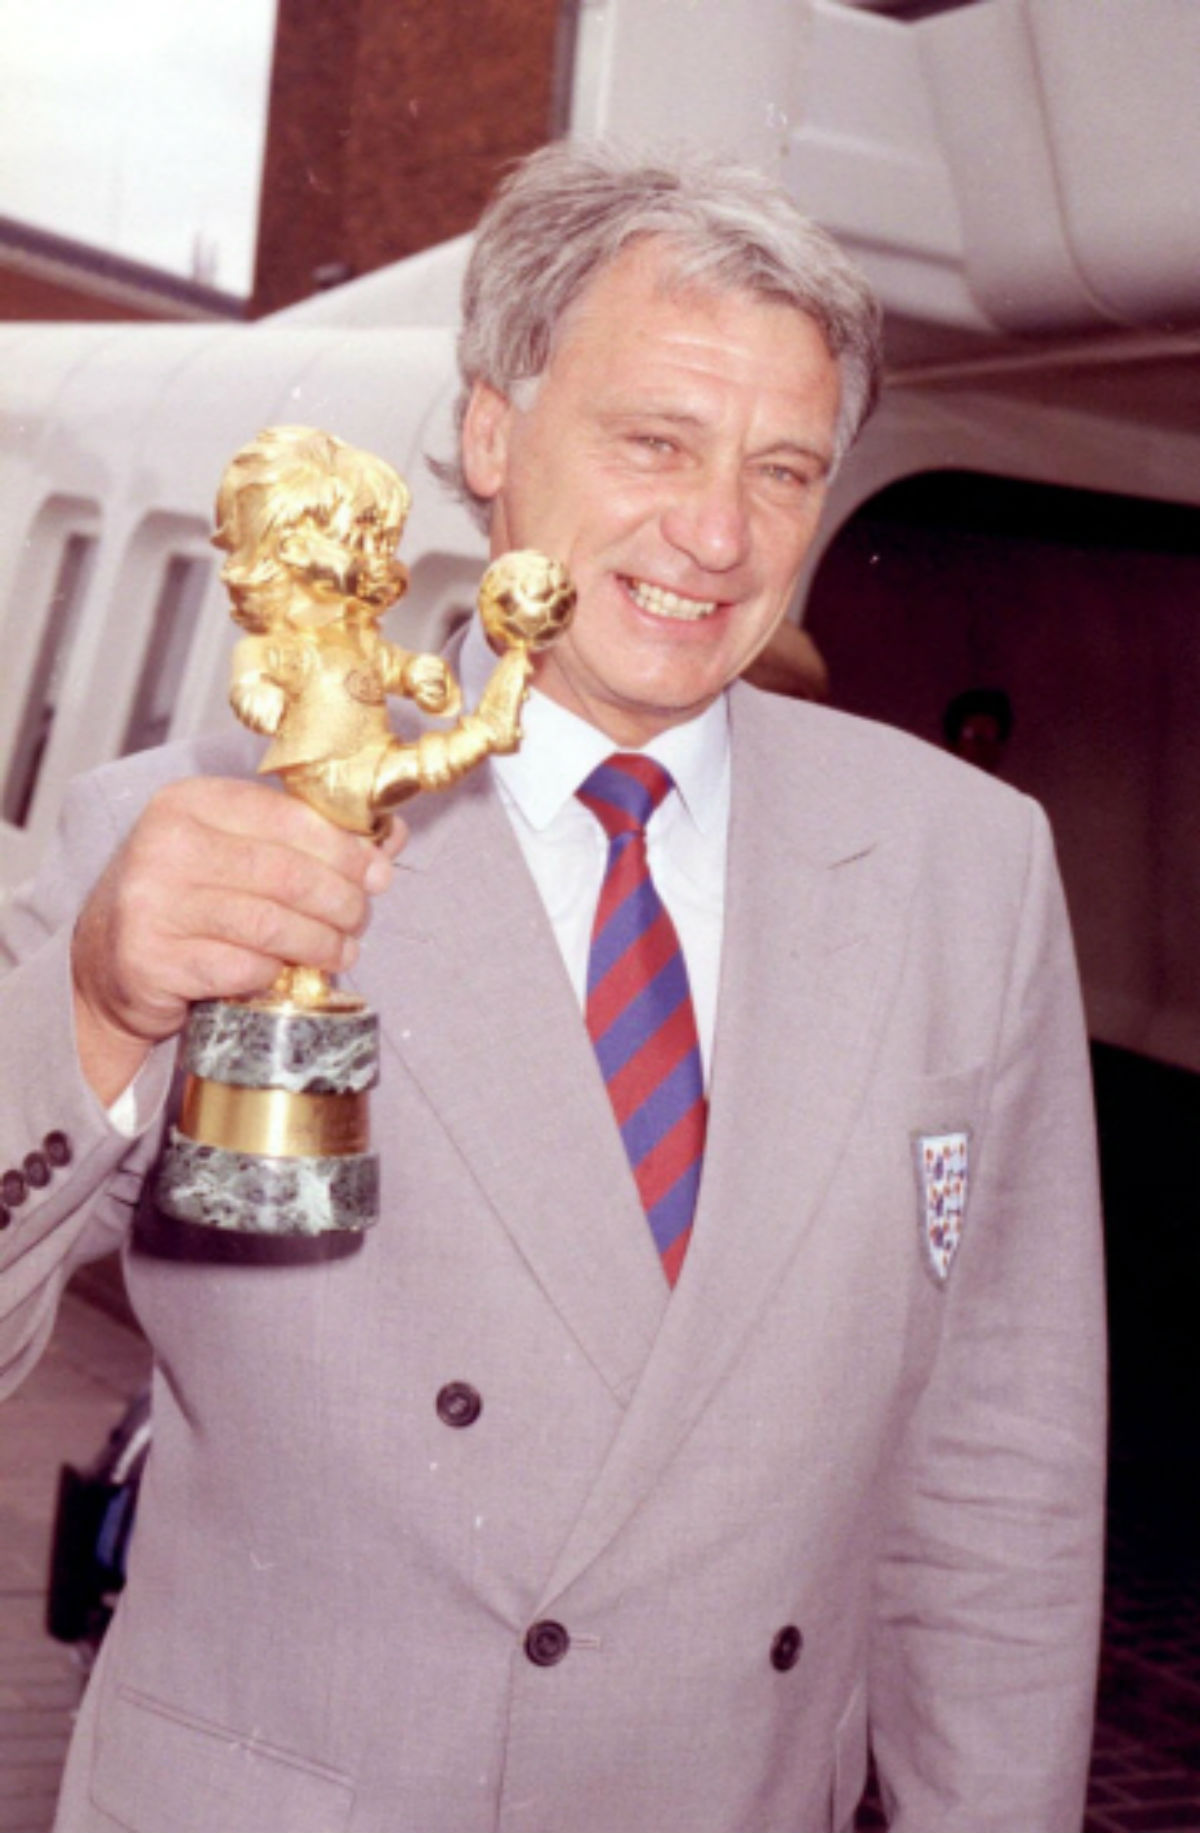 Sir Bobby pictured after the 1990 World Cup with the fair play trophy he received